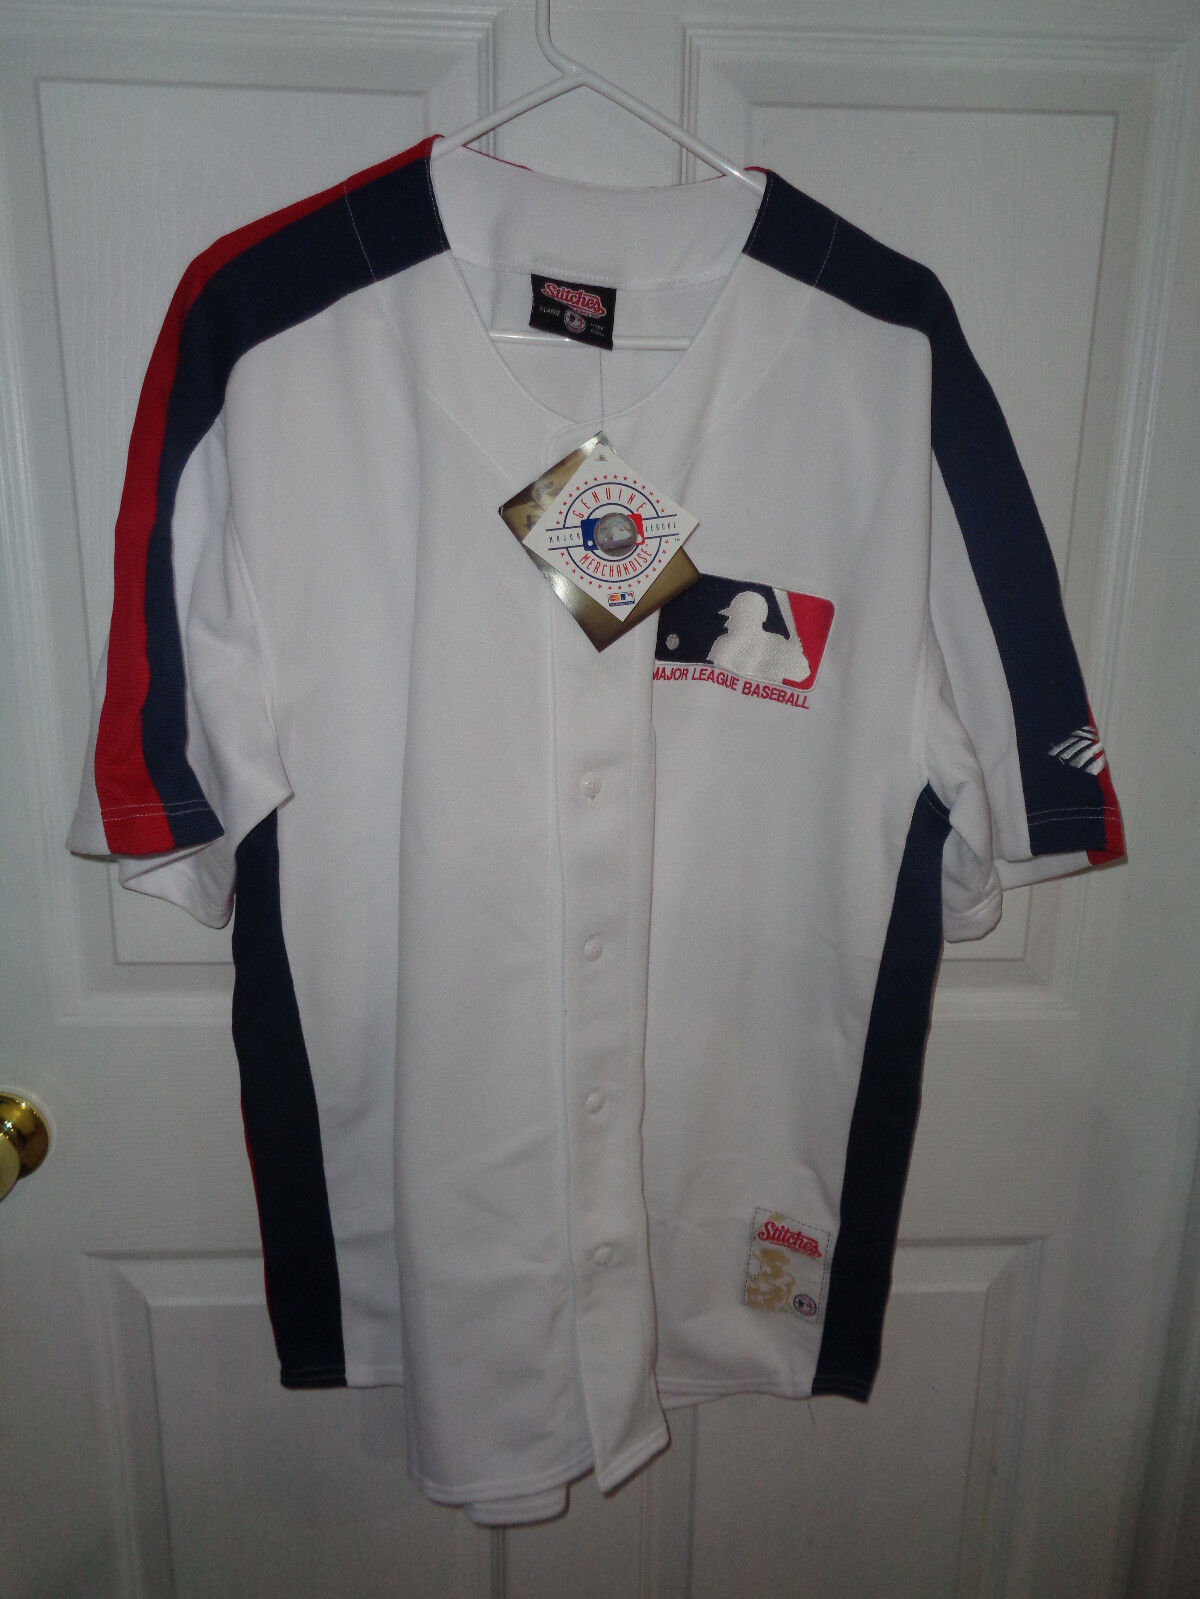 Stitches Athletic Gear Boston Red Sox Jersey Stitches